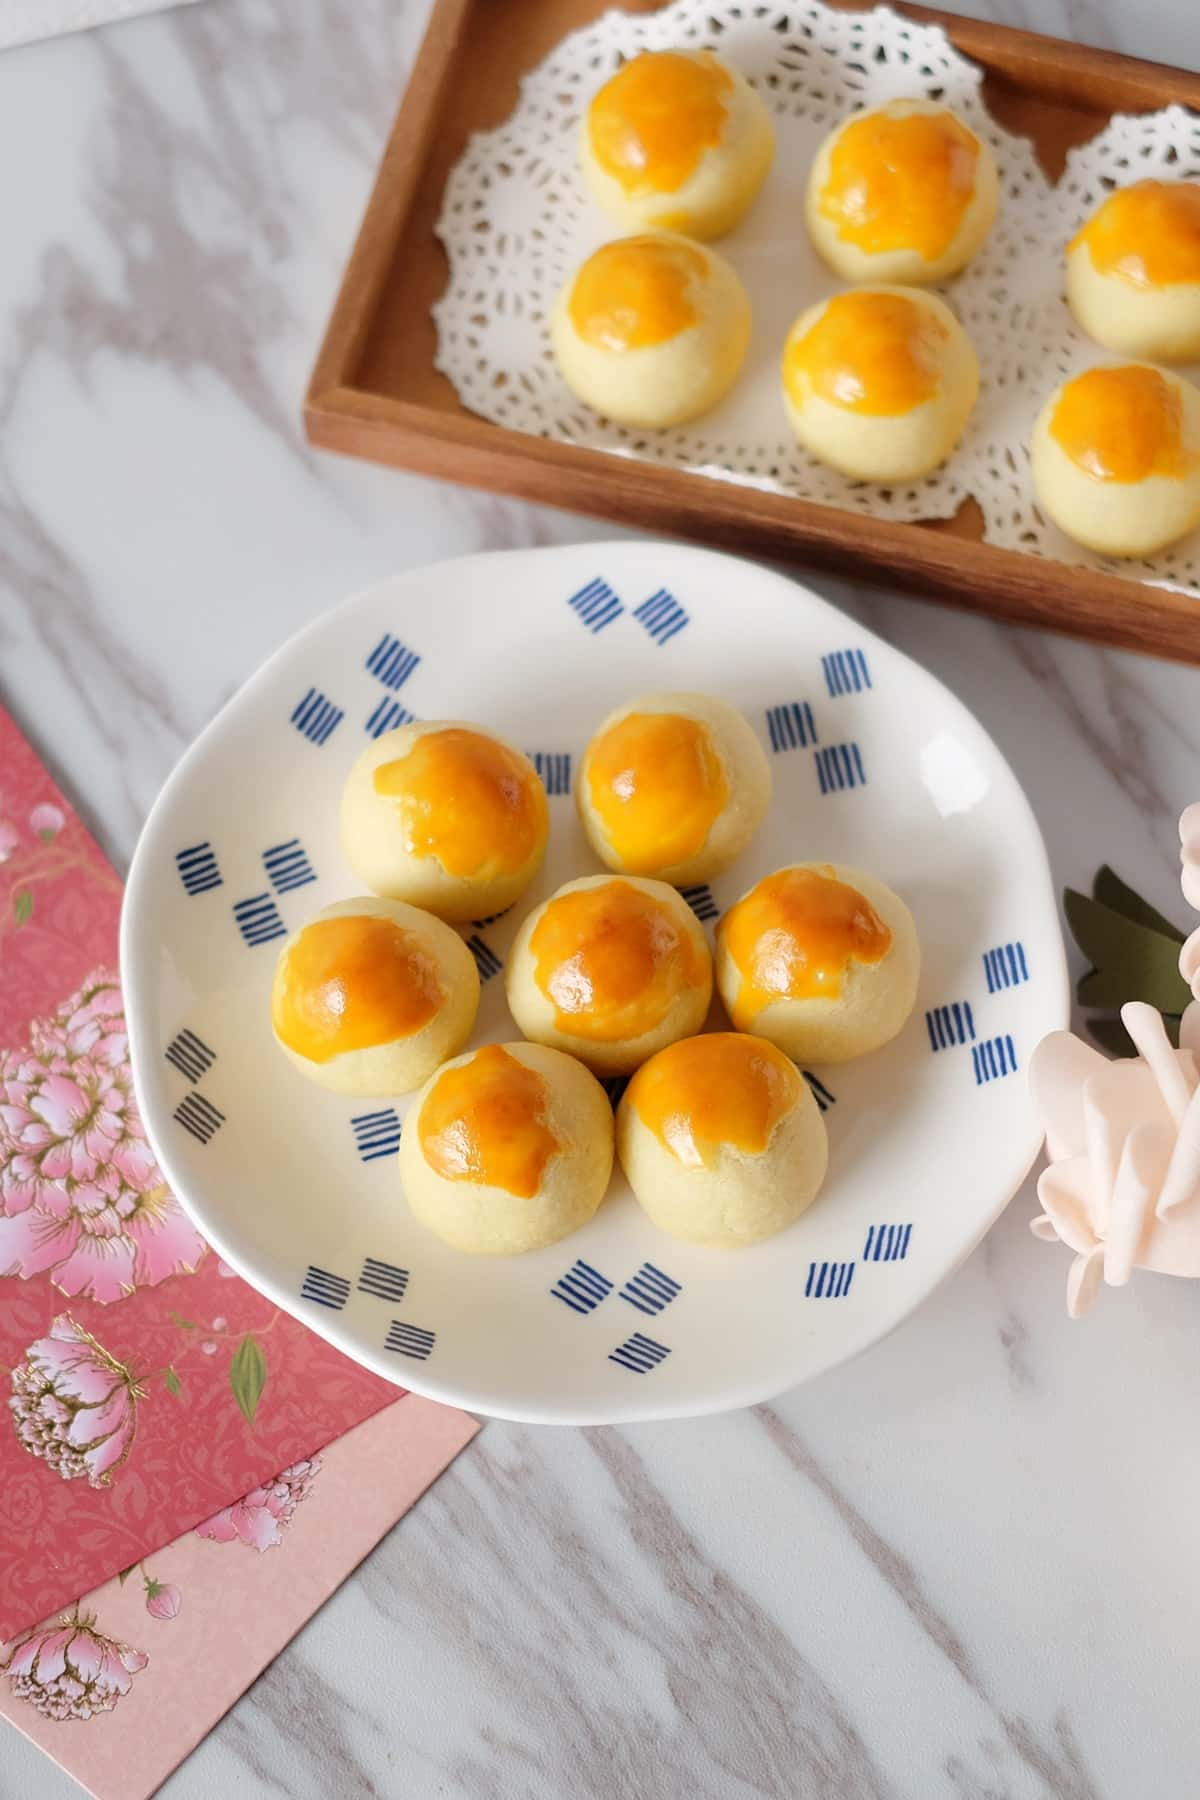 Melt-in-Mouth Pineapple Tarts on Plate